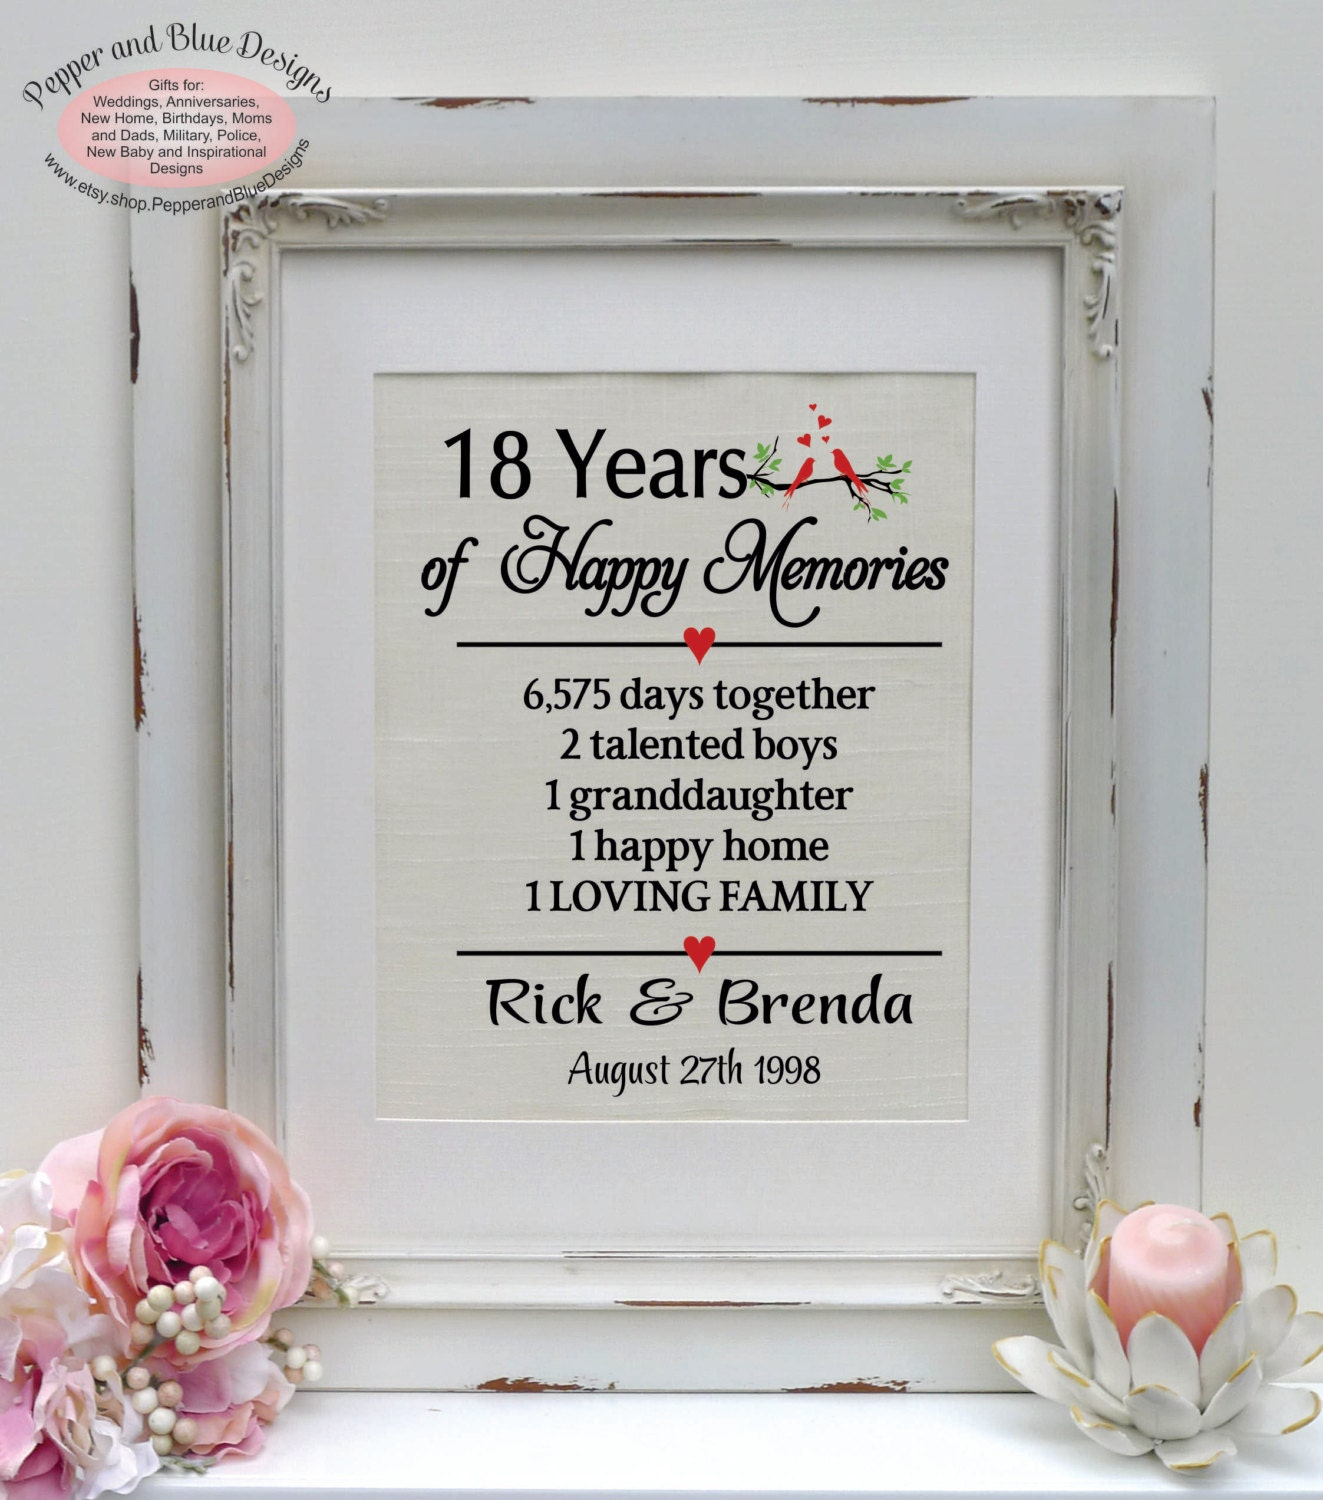 17th Anniversary Gift For Wife: 18th Wedding Anniversary Gifts 18 Years By